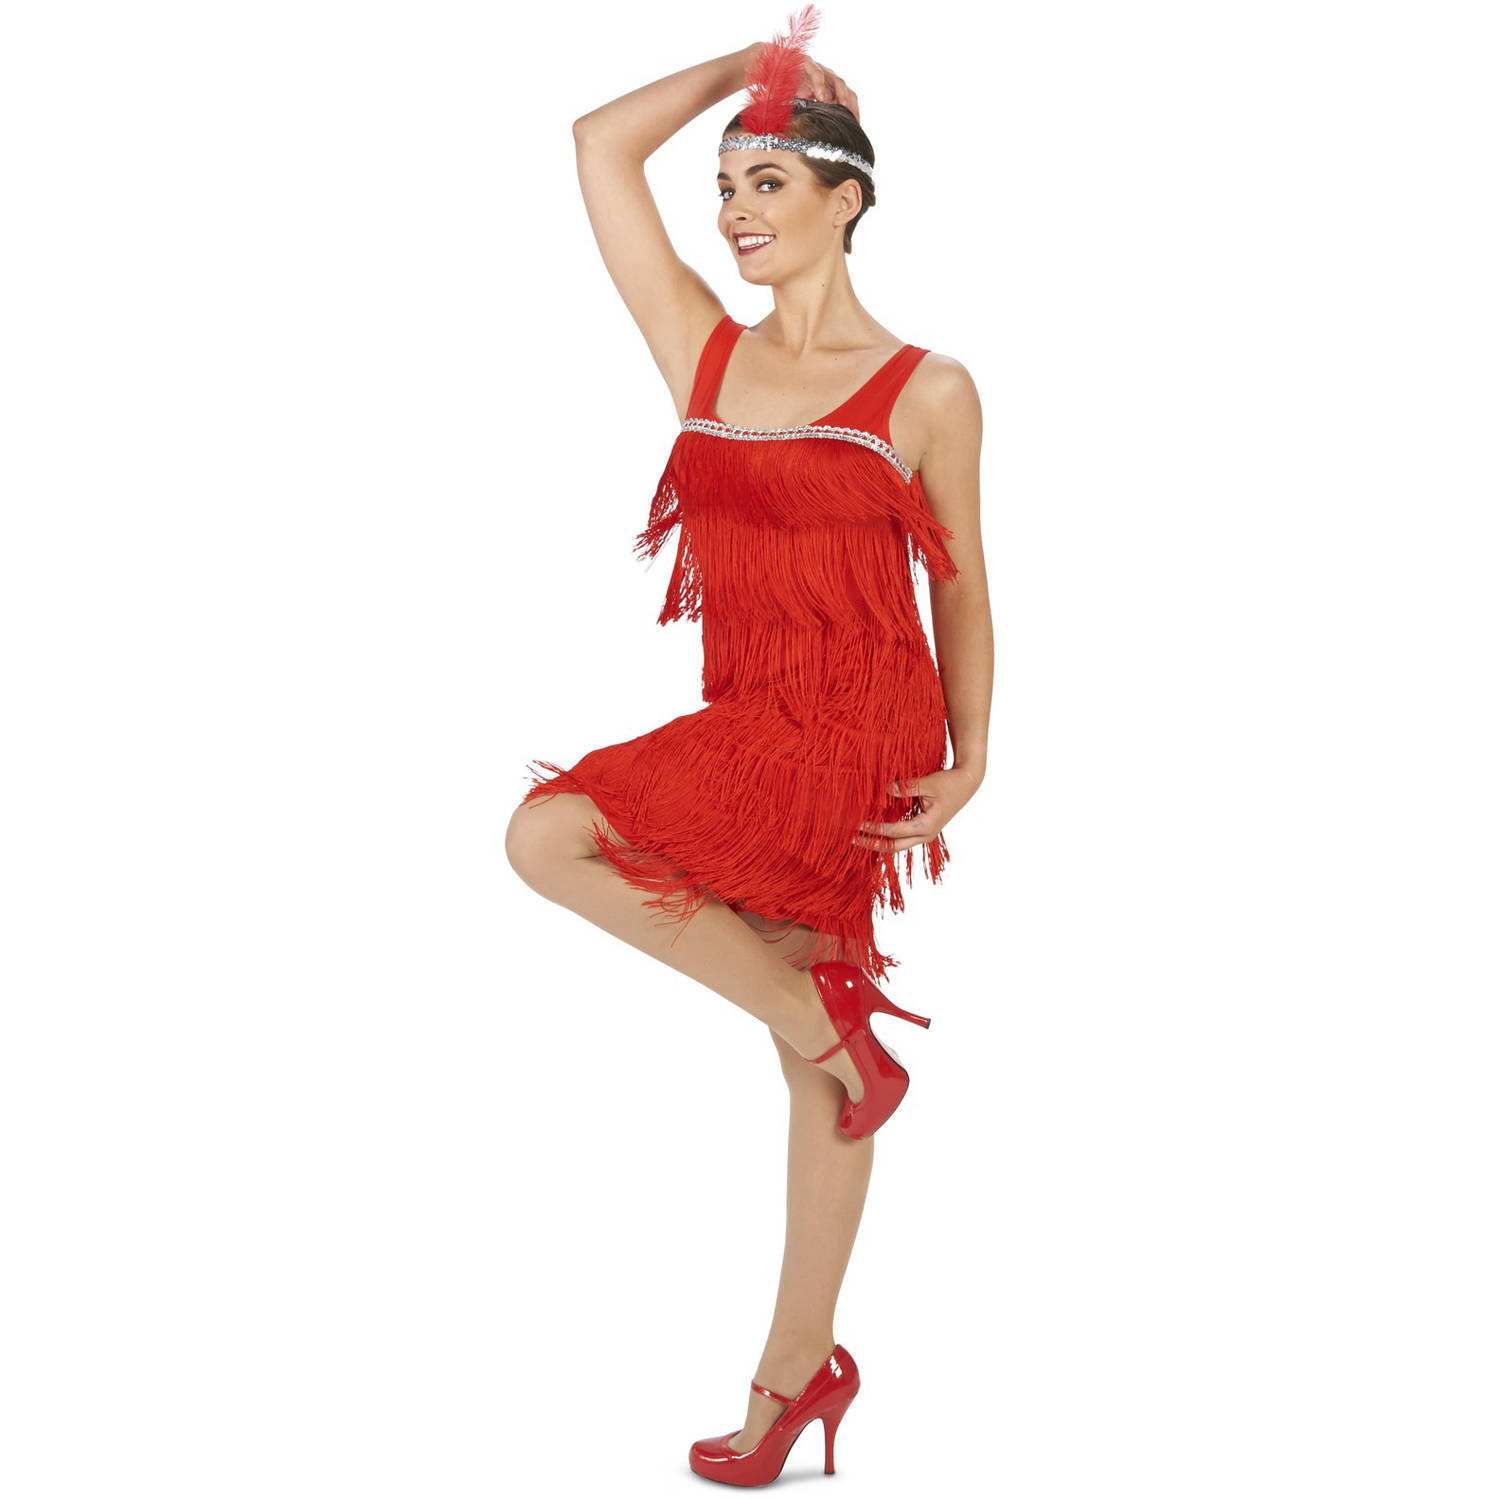 40d084847ad Roaring 20s Red Flapper Women s Adult Halloween Costume - Walmart.com